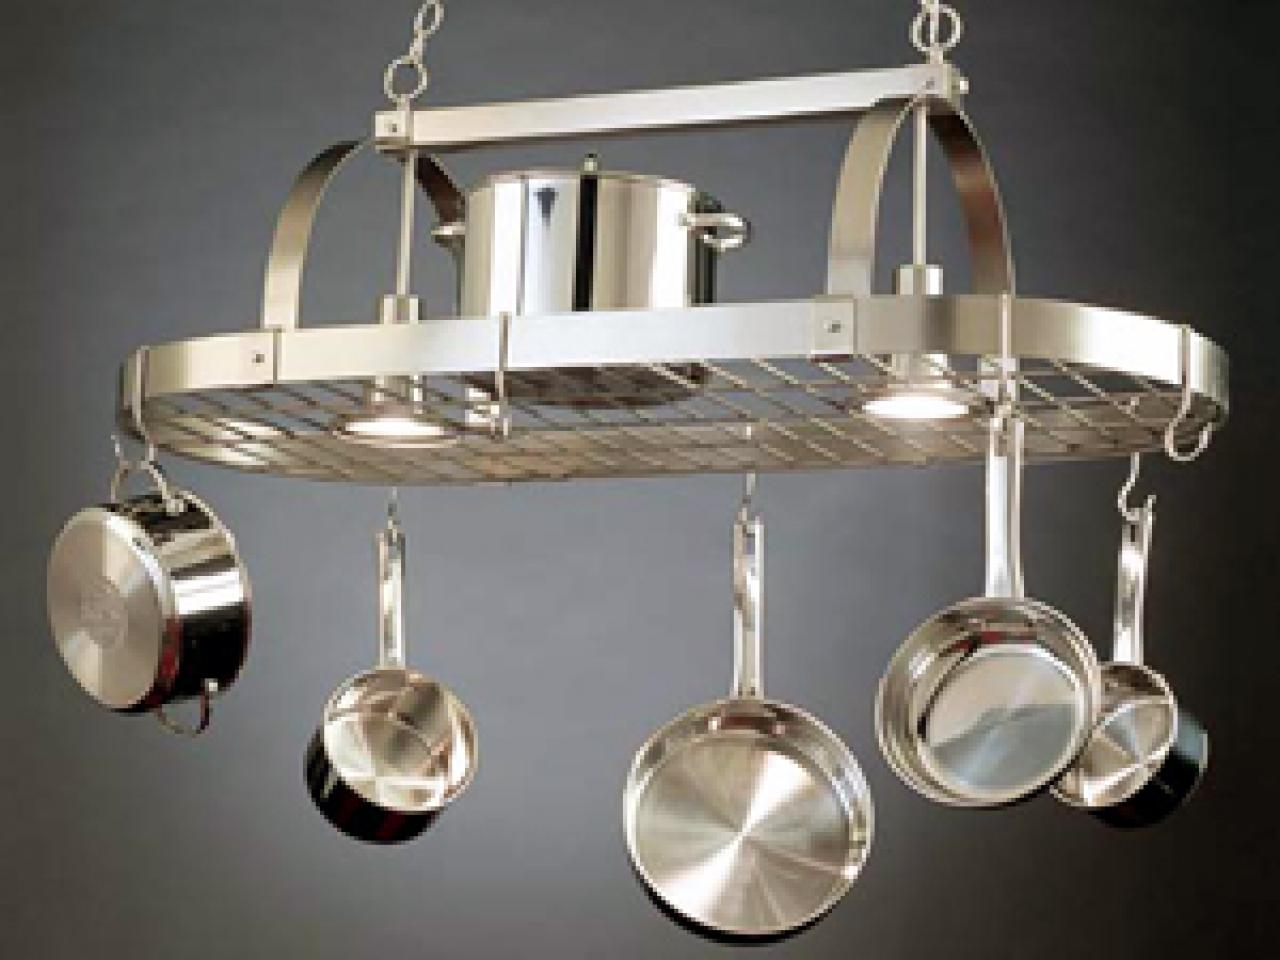 A Pot Rack In Its Proper Place HGTV - Kitchen pot rack light fixtures